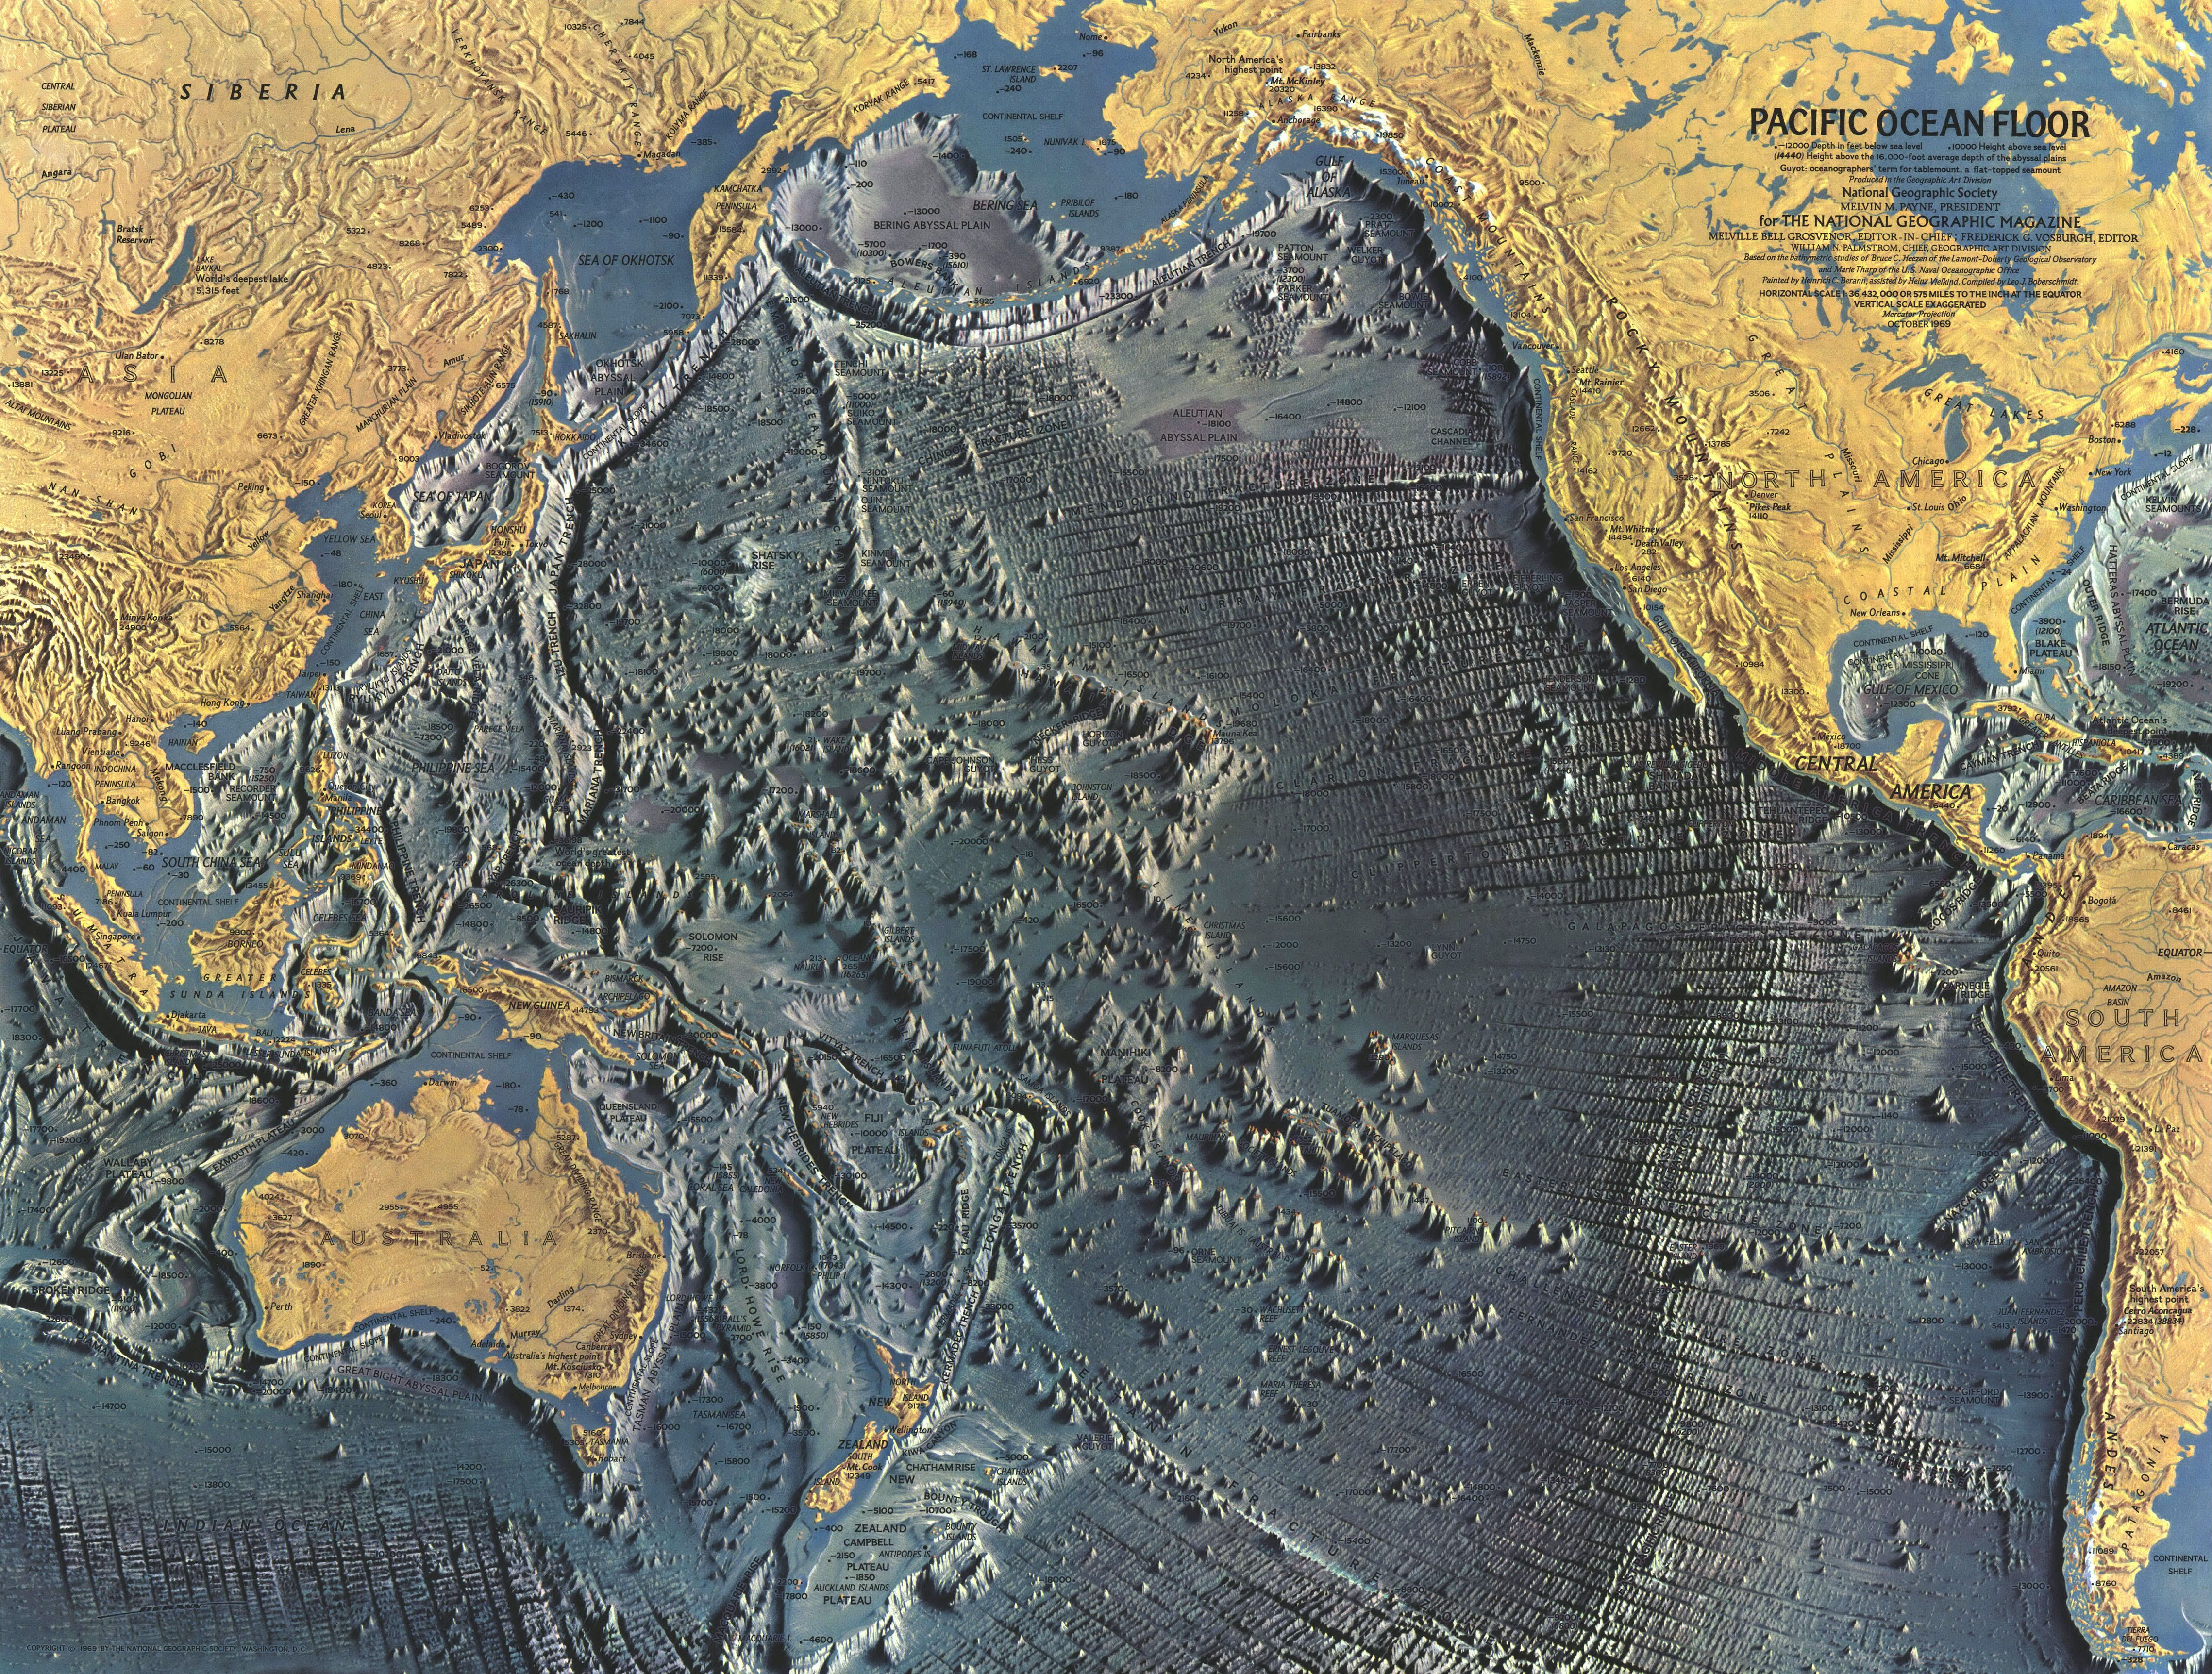 A Detailed Map Of The Pacific Ocean Floor 1969 Geographie